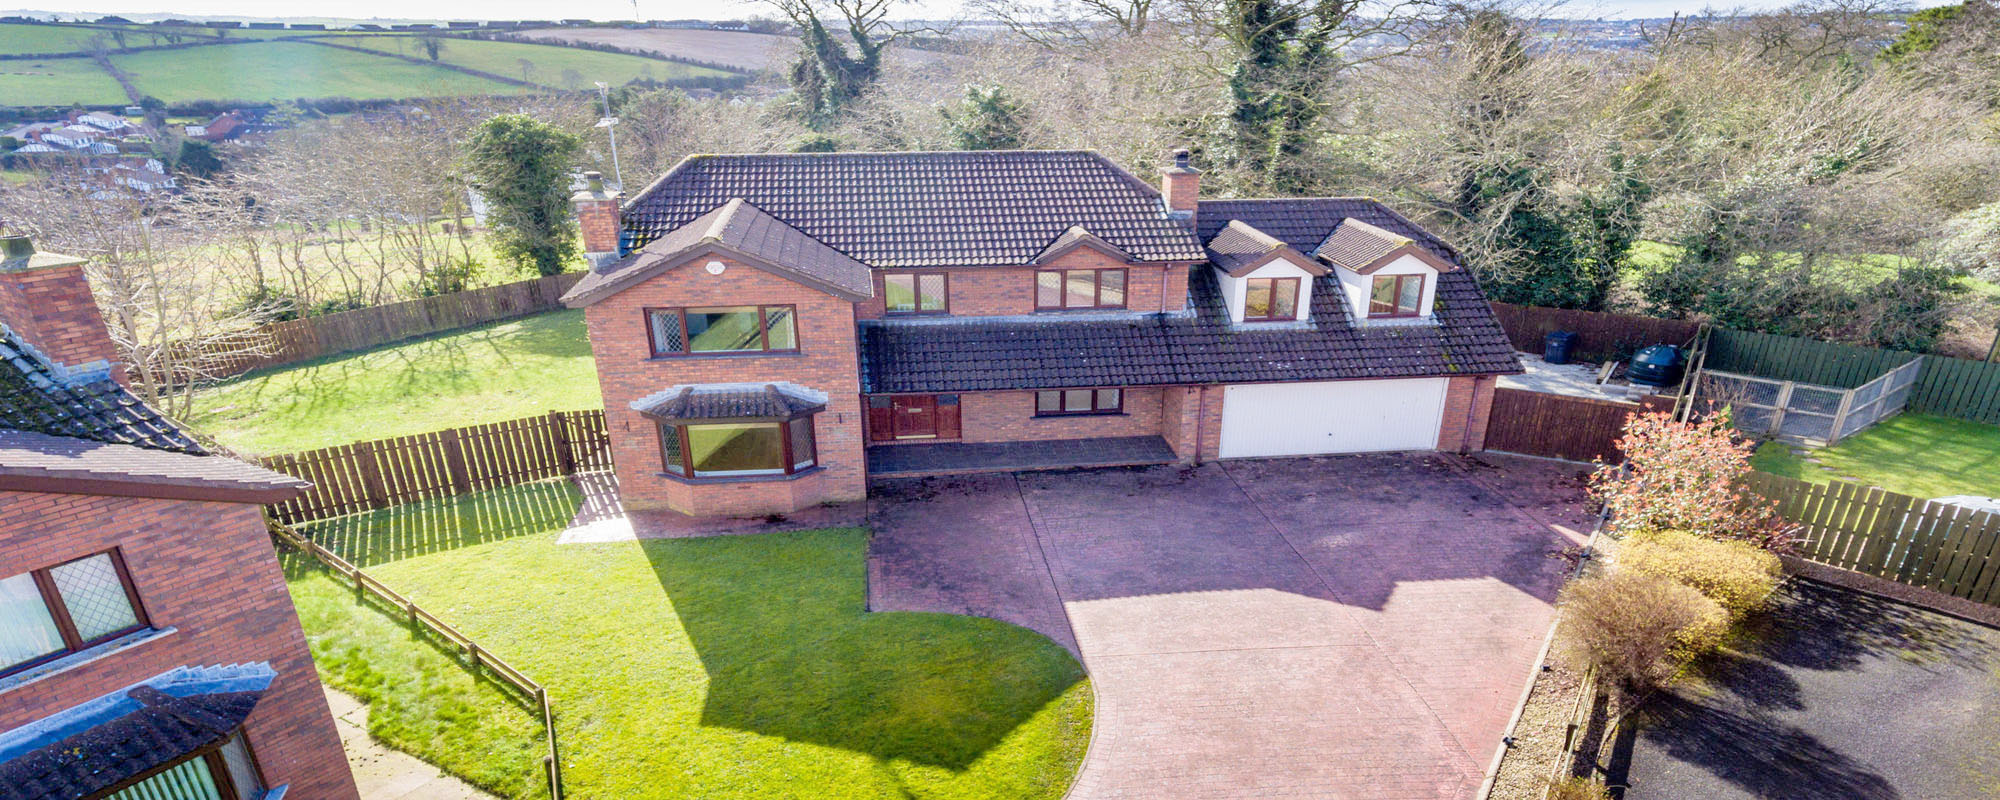 74 The Rowans, Banbridge, BT32 4DQ